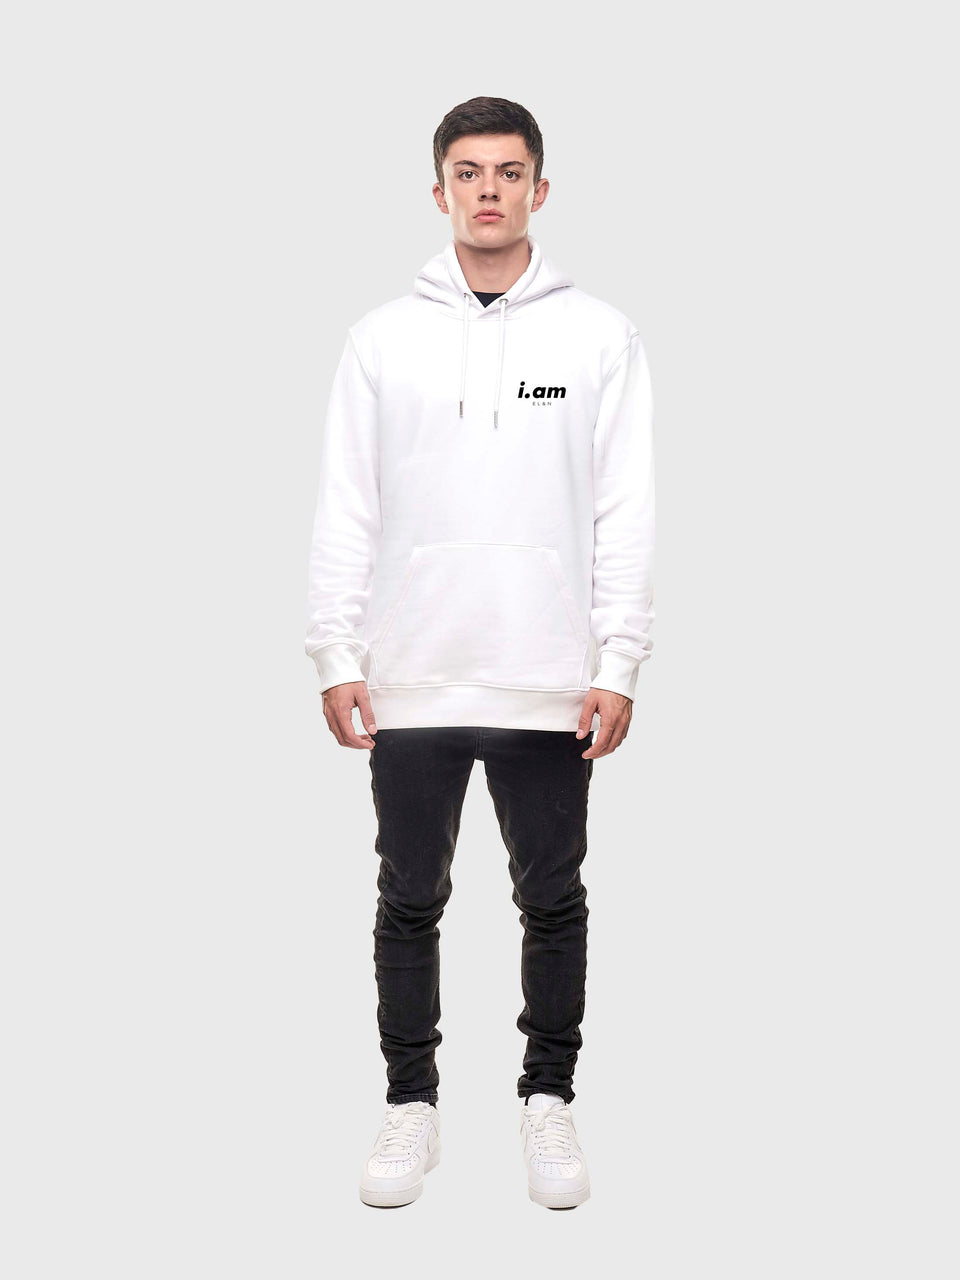 Made in London - White - Unisex pull over hoodie